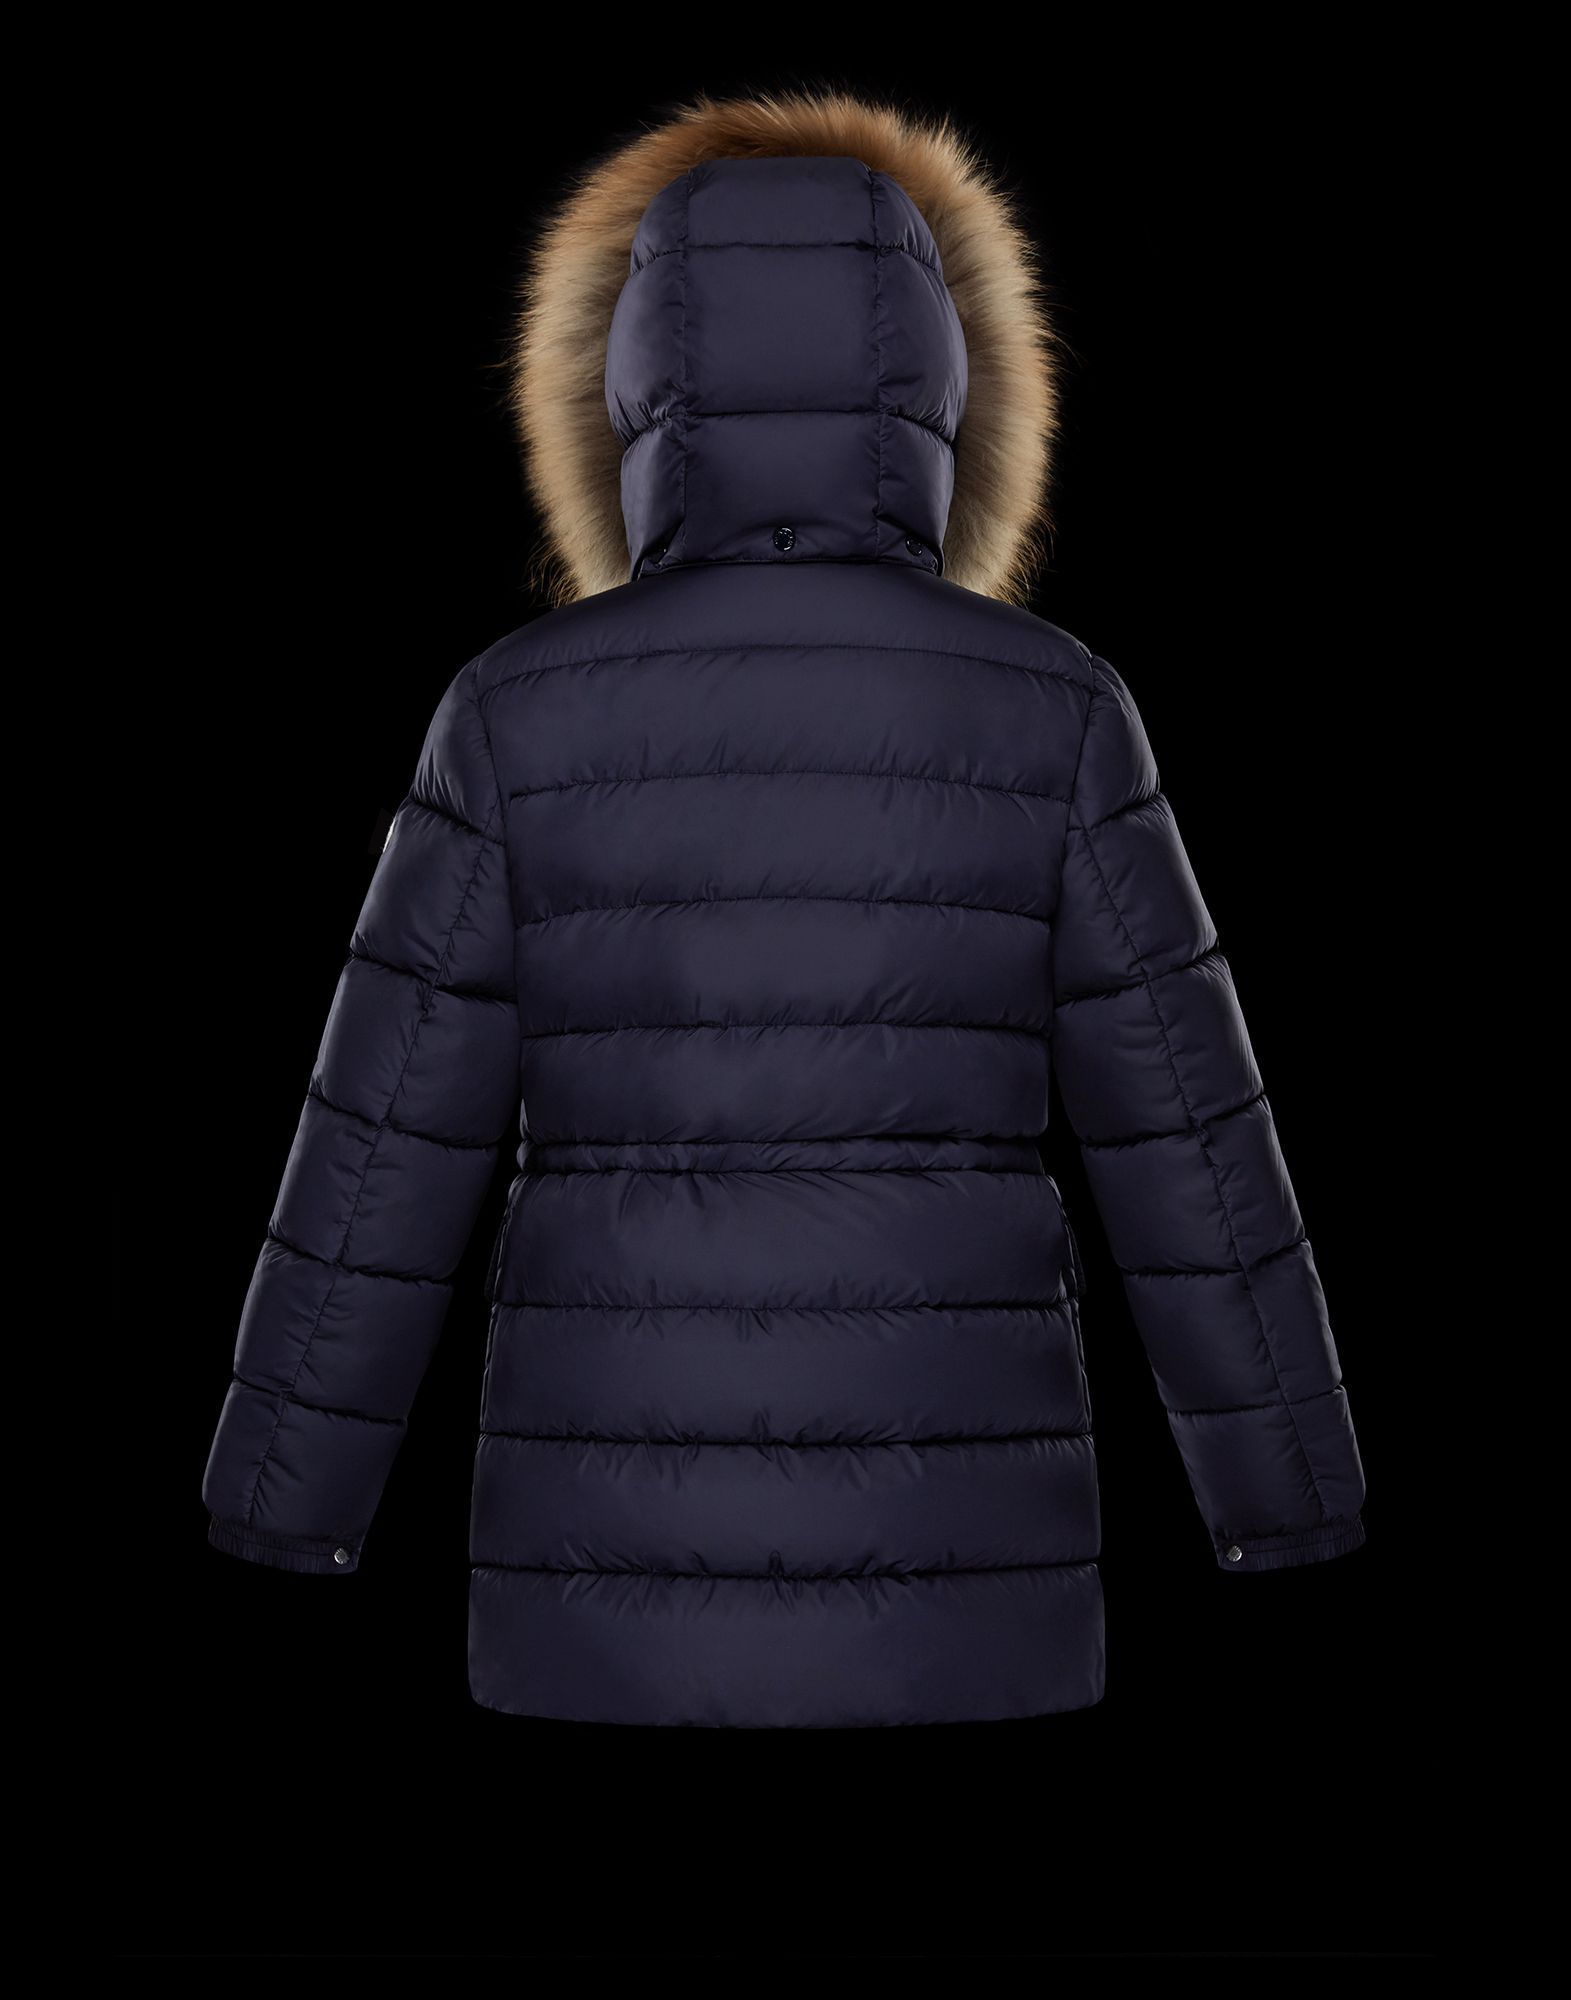 MONCLER2017/18新作ジュニアファー/フード付ダウンCLUNY 12A/14A